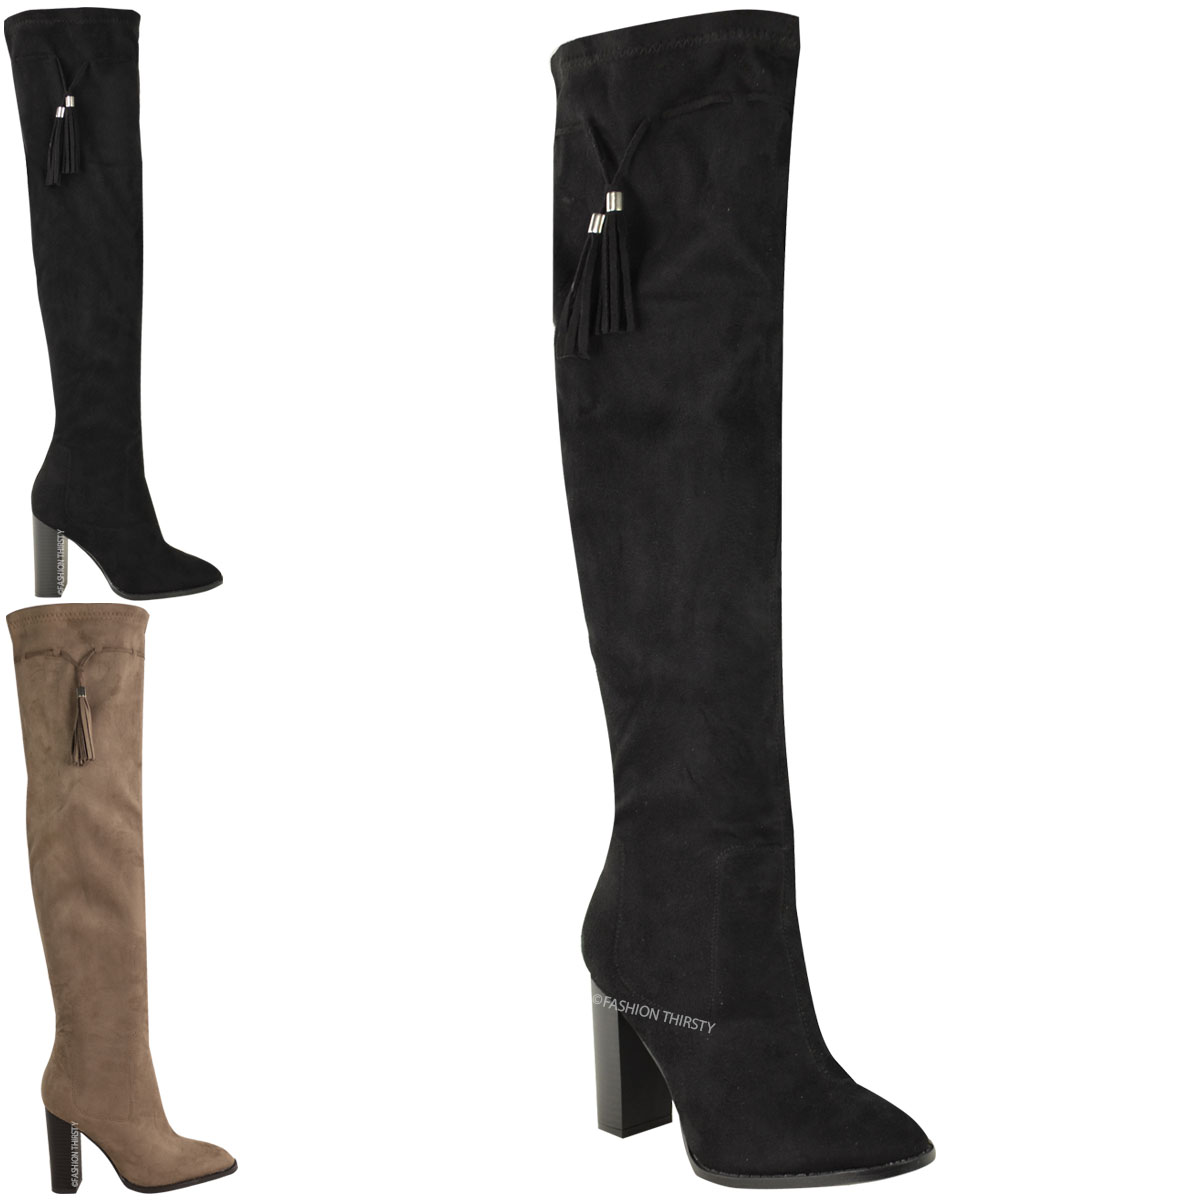 New Ladies Womens Stretch Over The Knee Boots Thigh High Block Heel Shoe Size UK